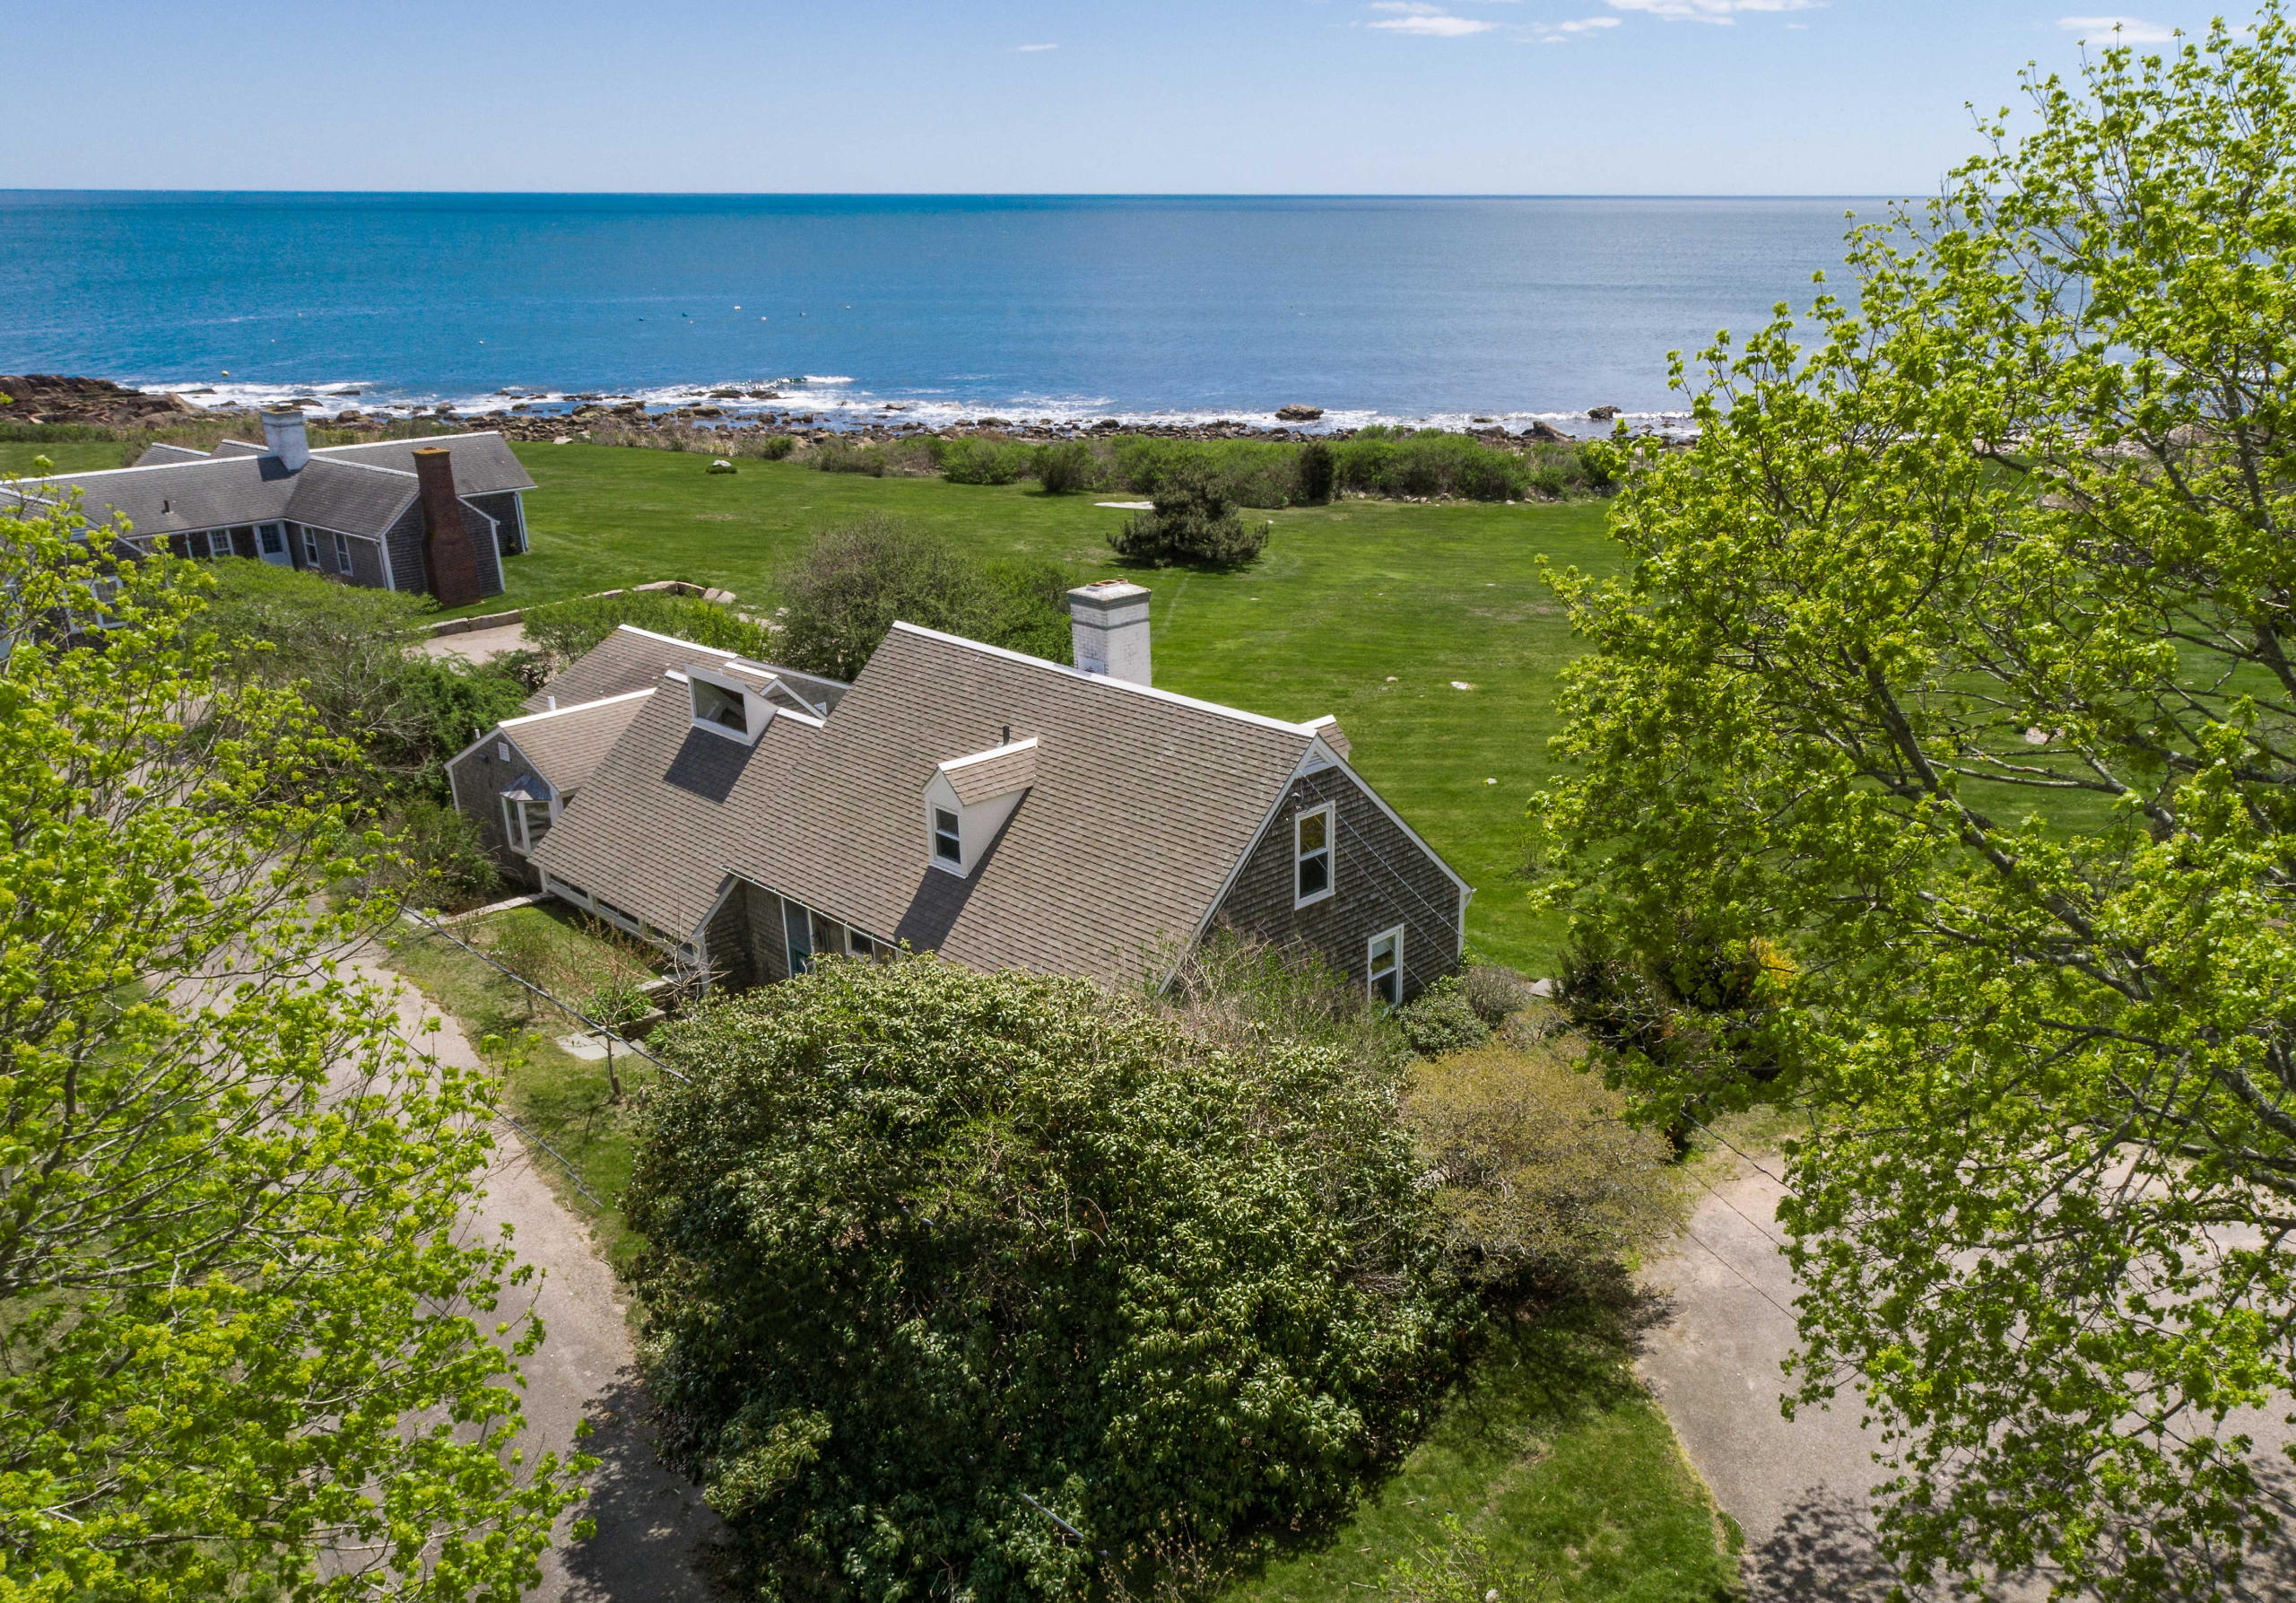 LILA DELMAN COMPASS SELLS OCEANFRONT HOME,  MARKING THIRD HIGHEST SALE IN NARRAGANSETT YEAR-TO-DATE*